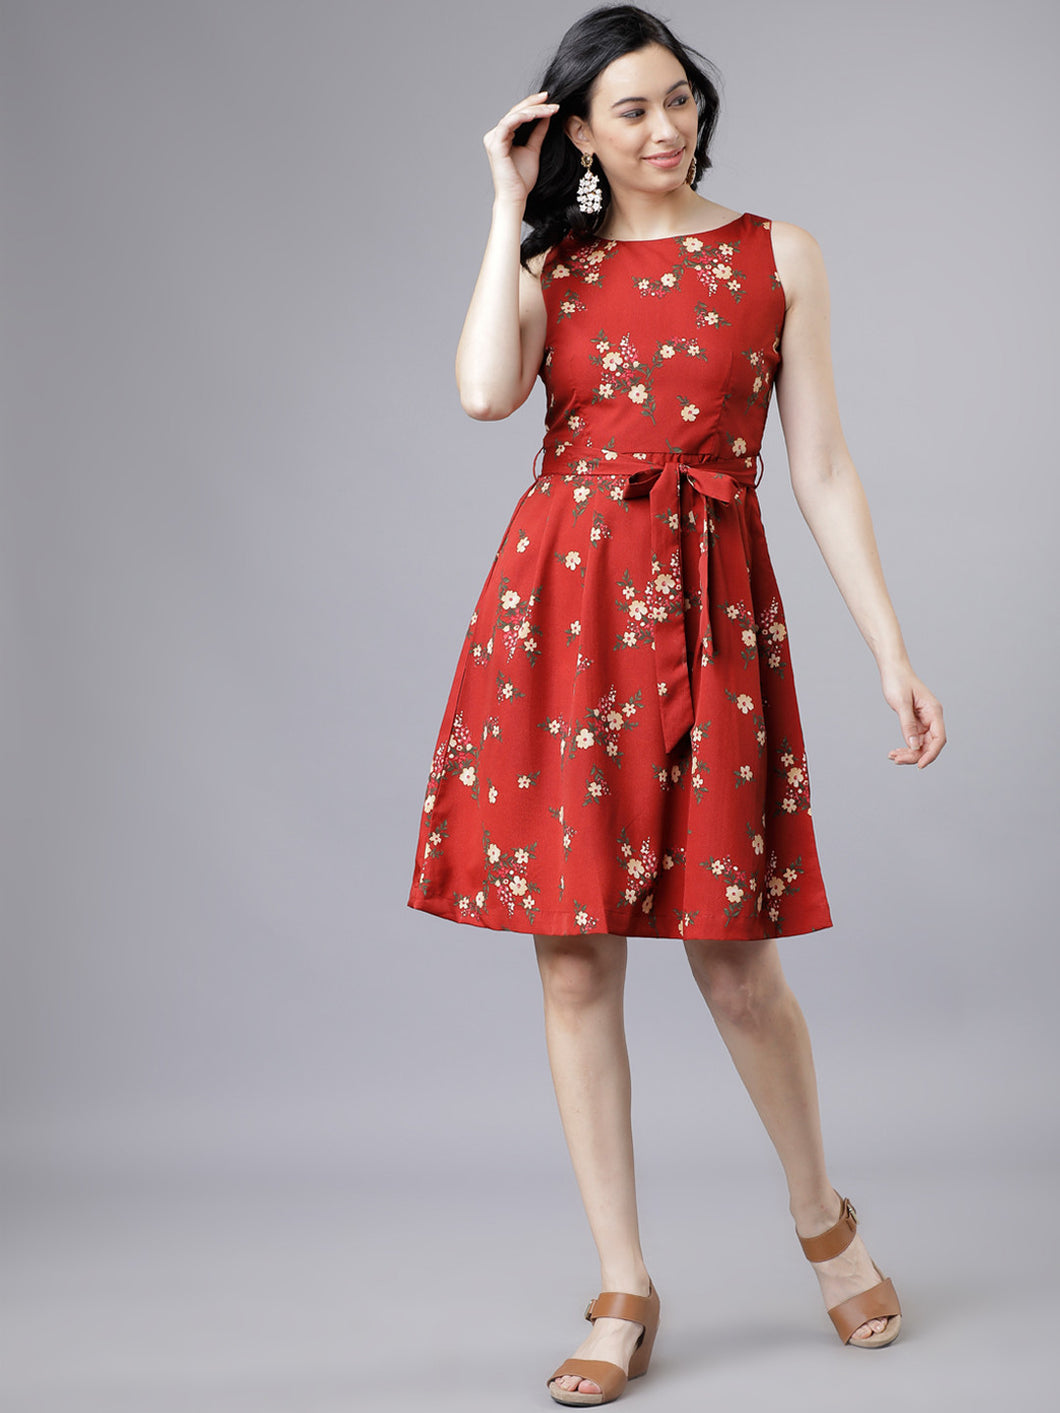 Queen ellie Women Rust Red Floral Printed Dress